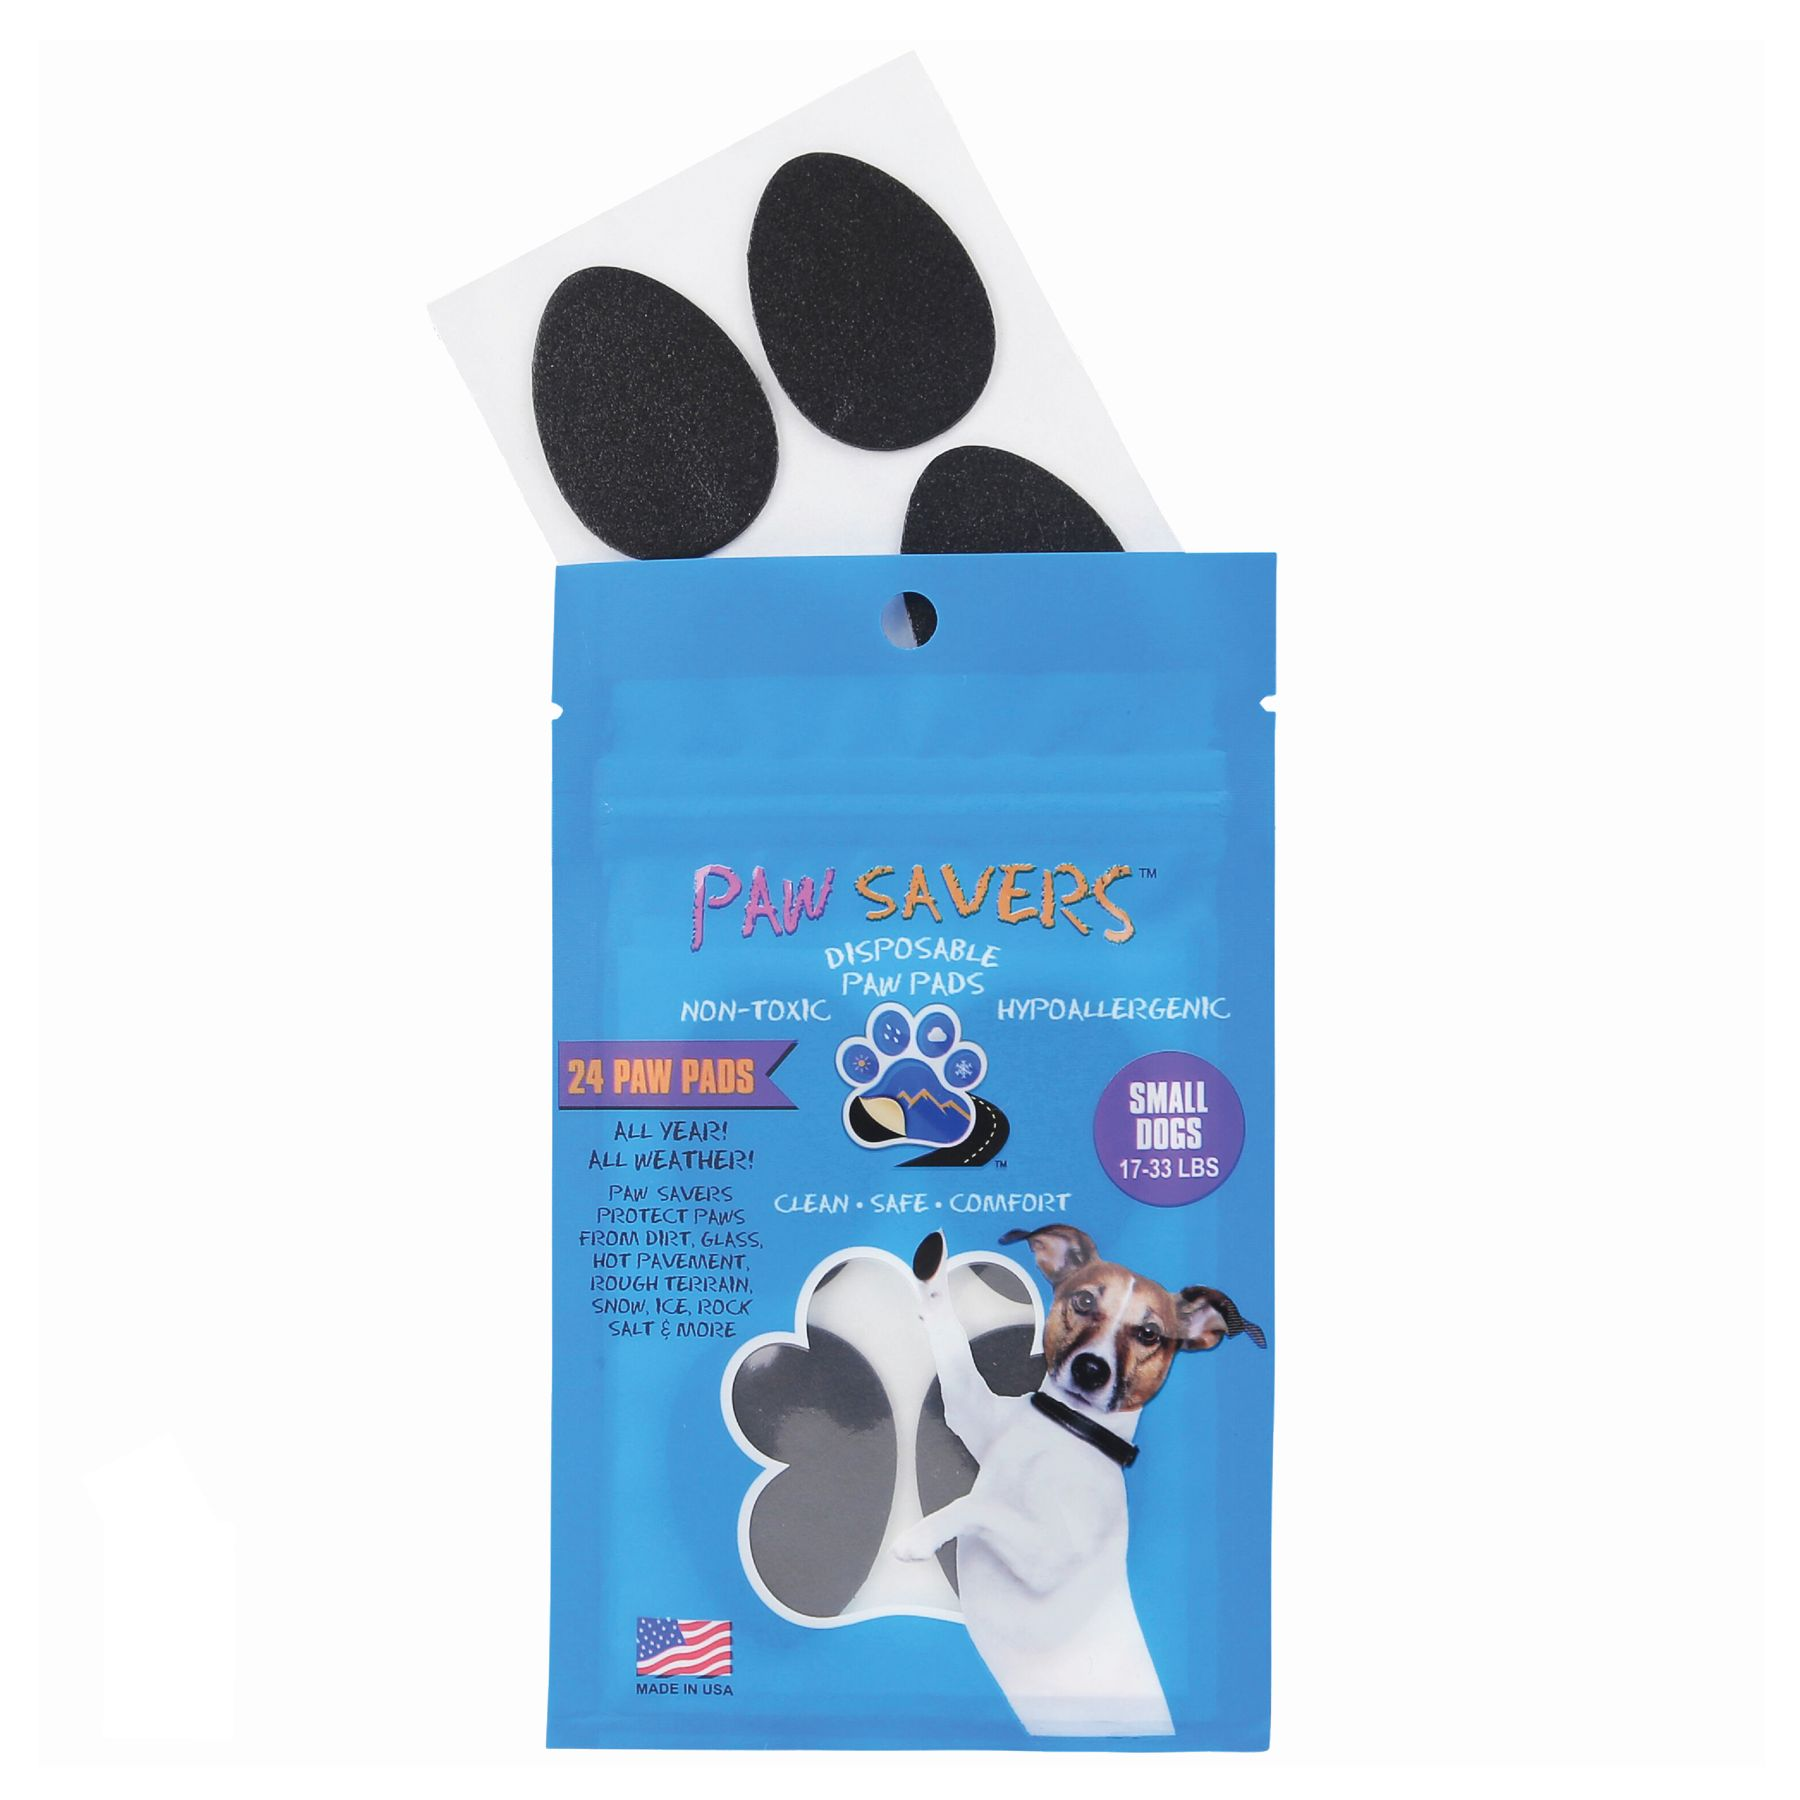 Paw Savers Disposable Paw Pads Size Small